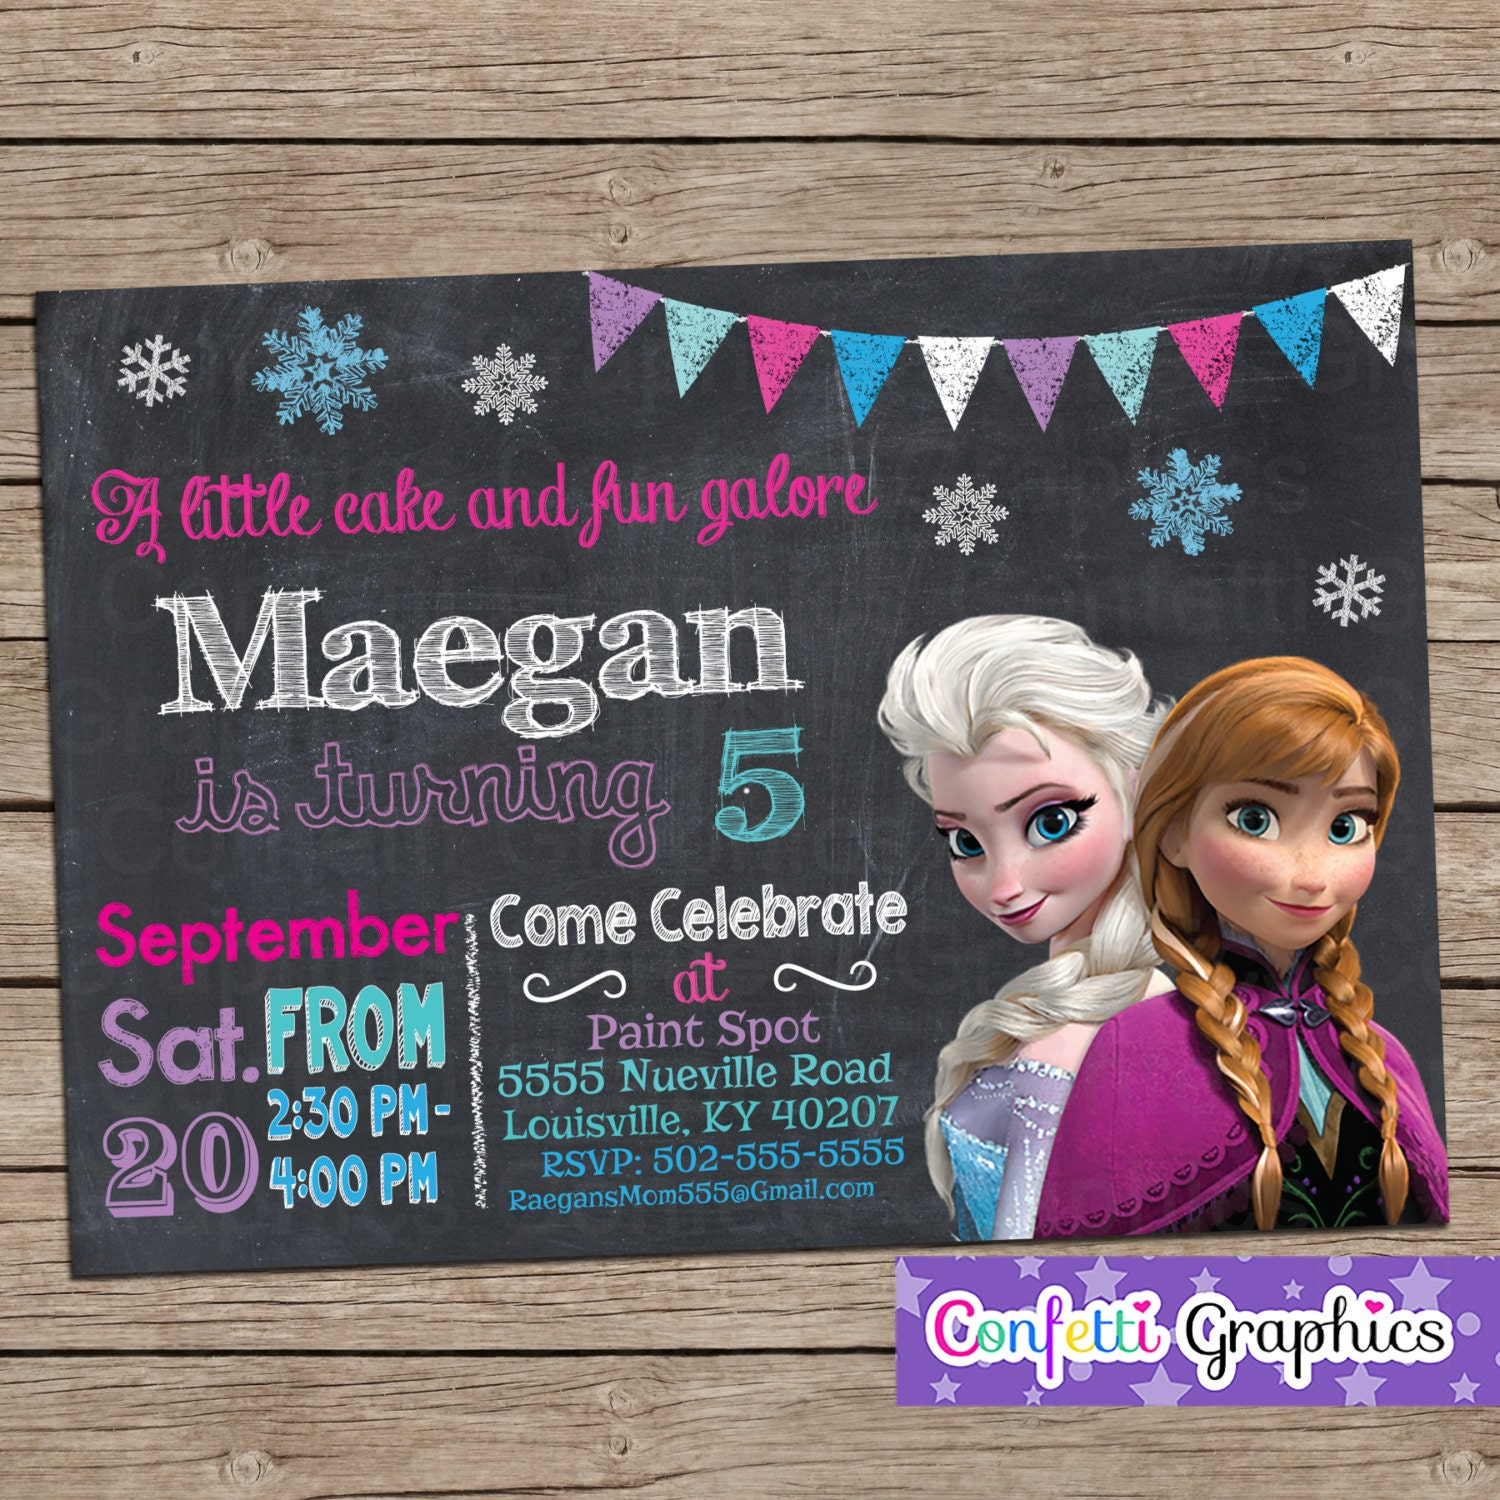 Frozen birthday invitation chalkboard chalk girls cute anna frozen birthday invitation chalkboard chalk girls cute anna elsa colorful custom printable personalized invite any age baby 1 2 3 4 5 6 7 filmwisefo Gallery